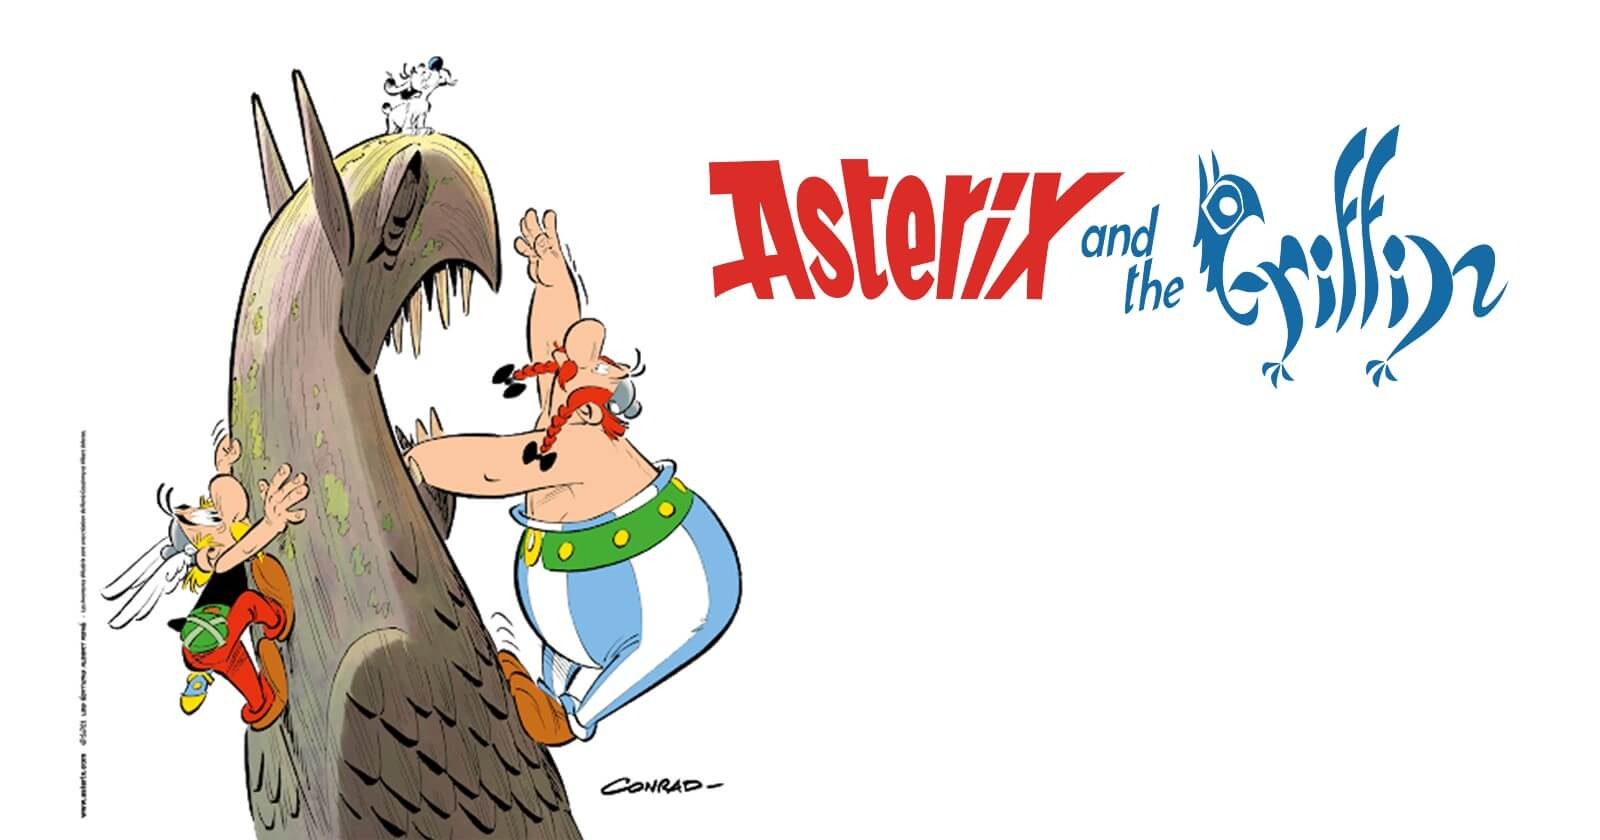 The thirty-ninth comic book adventure of Asterix, Obelix and Idefix arrives on October 28, 2021 image